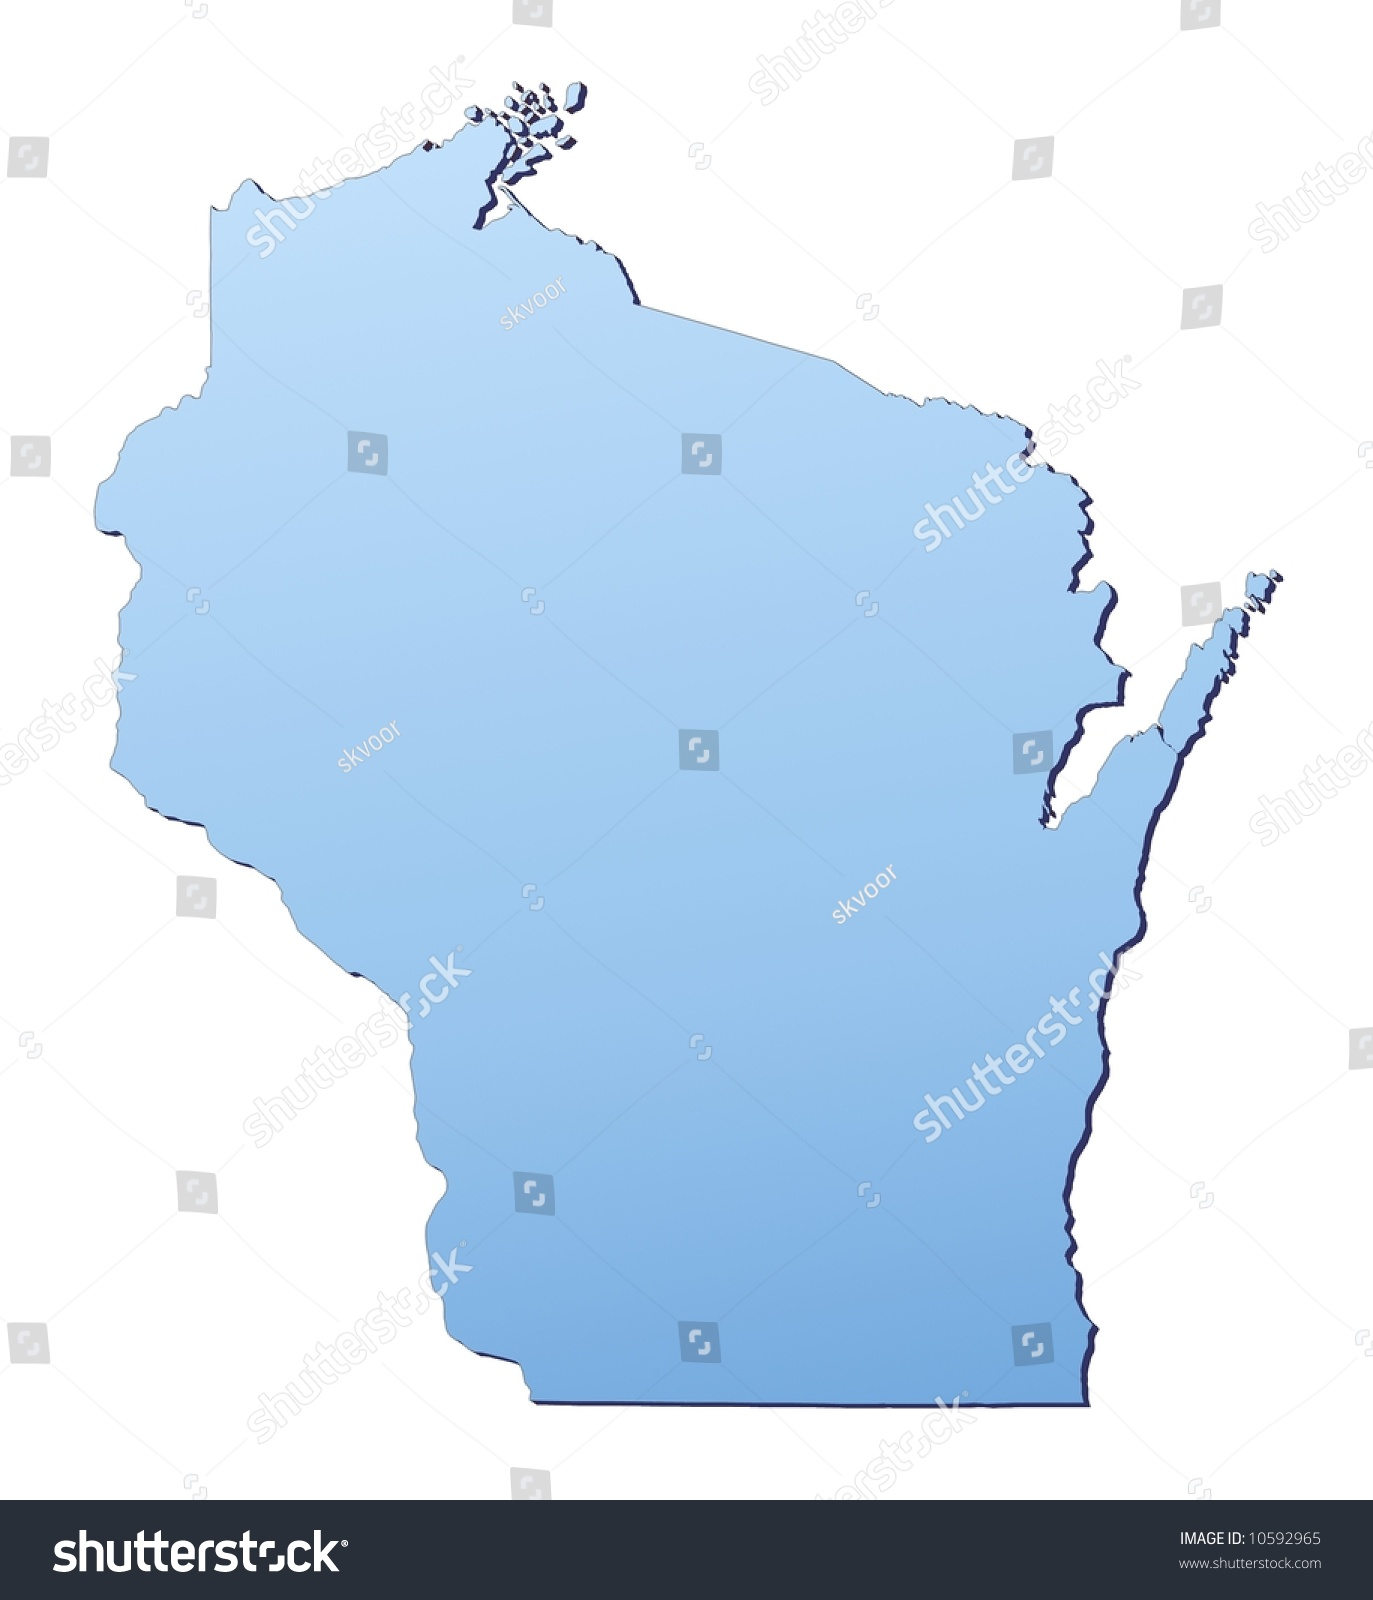 Wisconsin State Maps USA Maps Of Wisconsin WI Outline Map Of Maps - Wisconsin road map usa